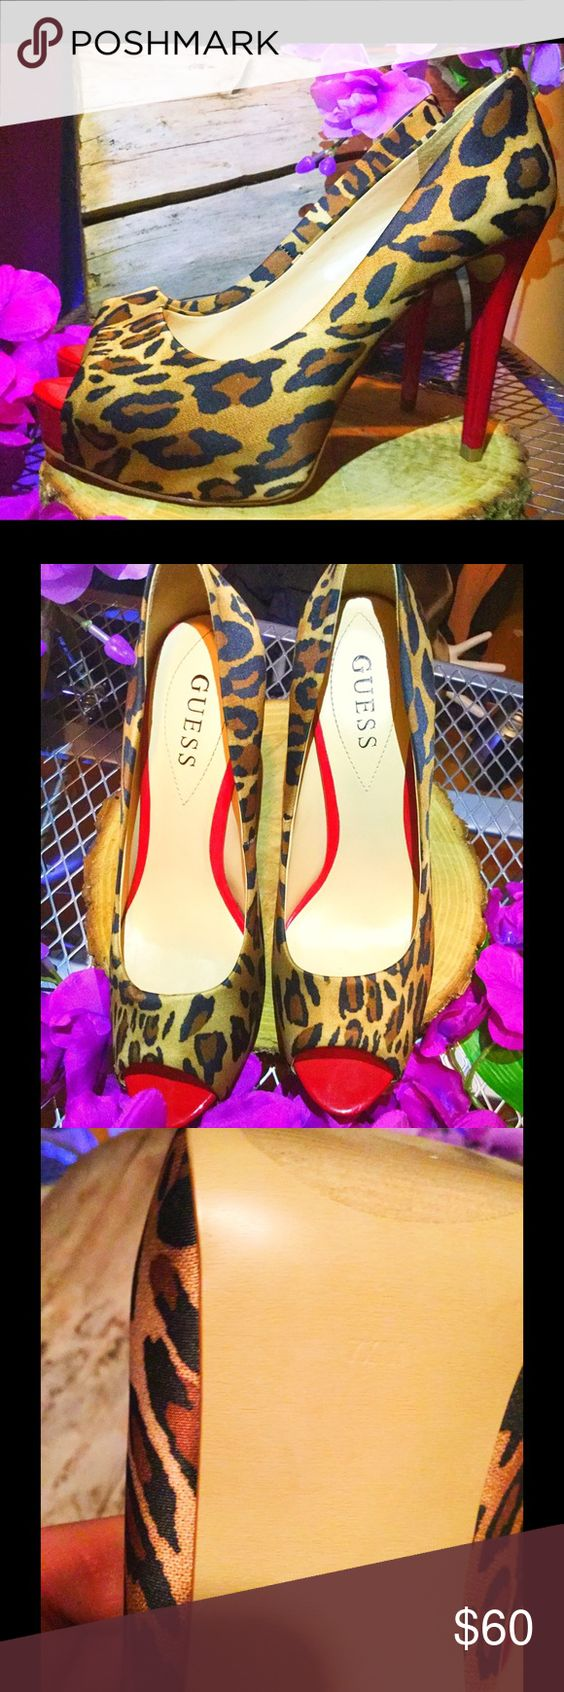 Guess Heels. Cheetah 7.5. Super Sexy and Wild. Guess open toe heel. Red detail on heel. Very comfortable and sexy. Guess Shoes Heels